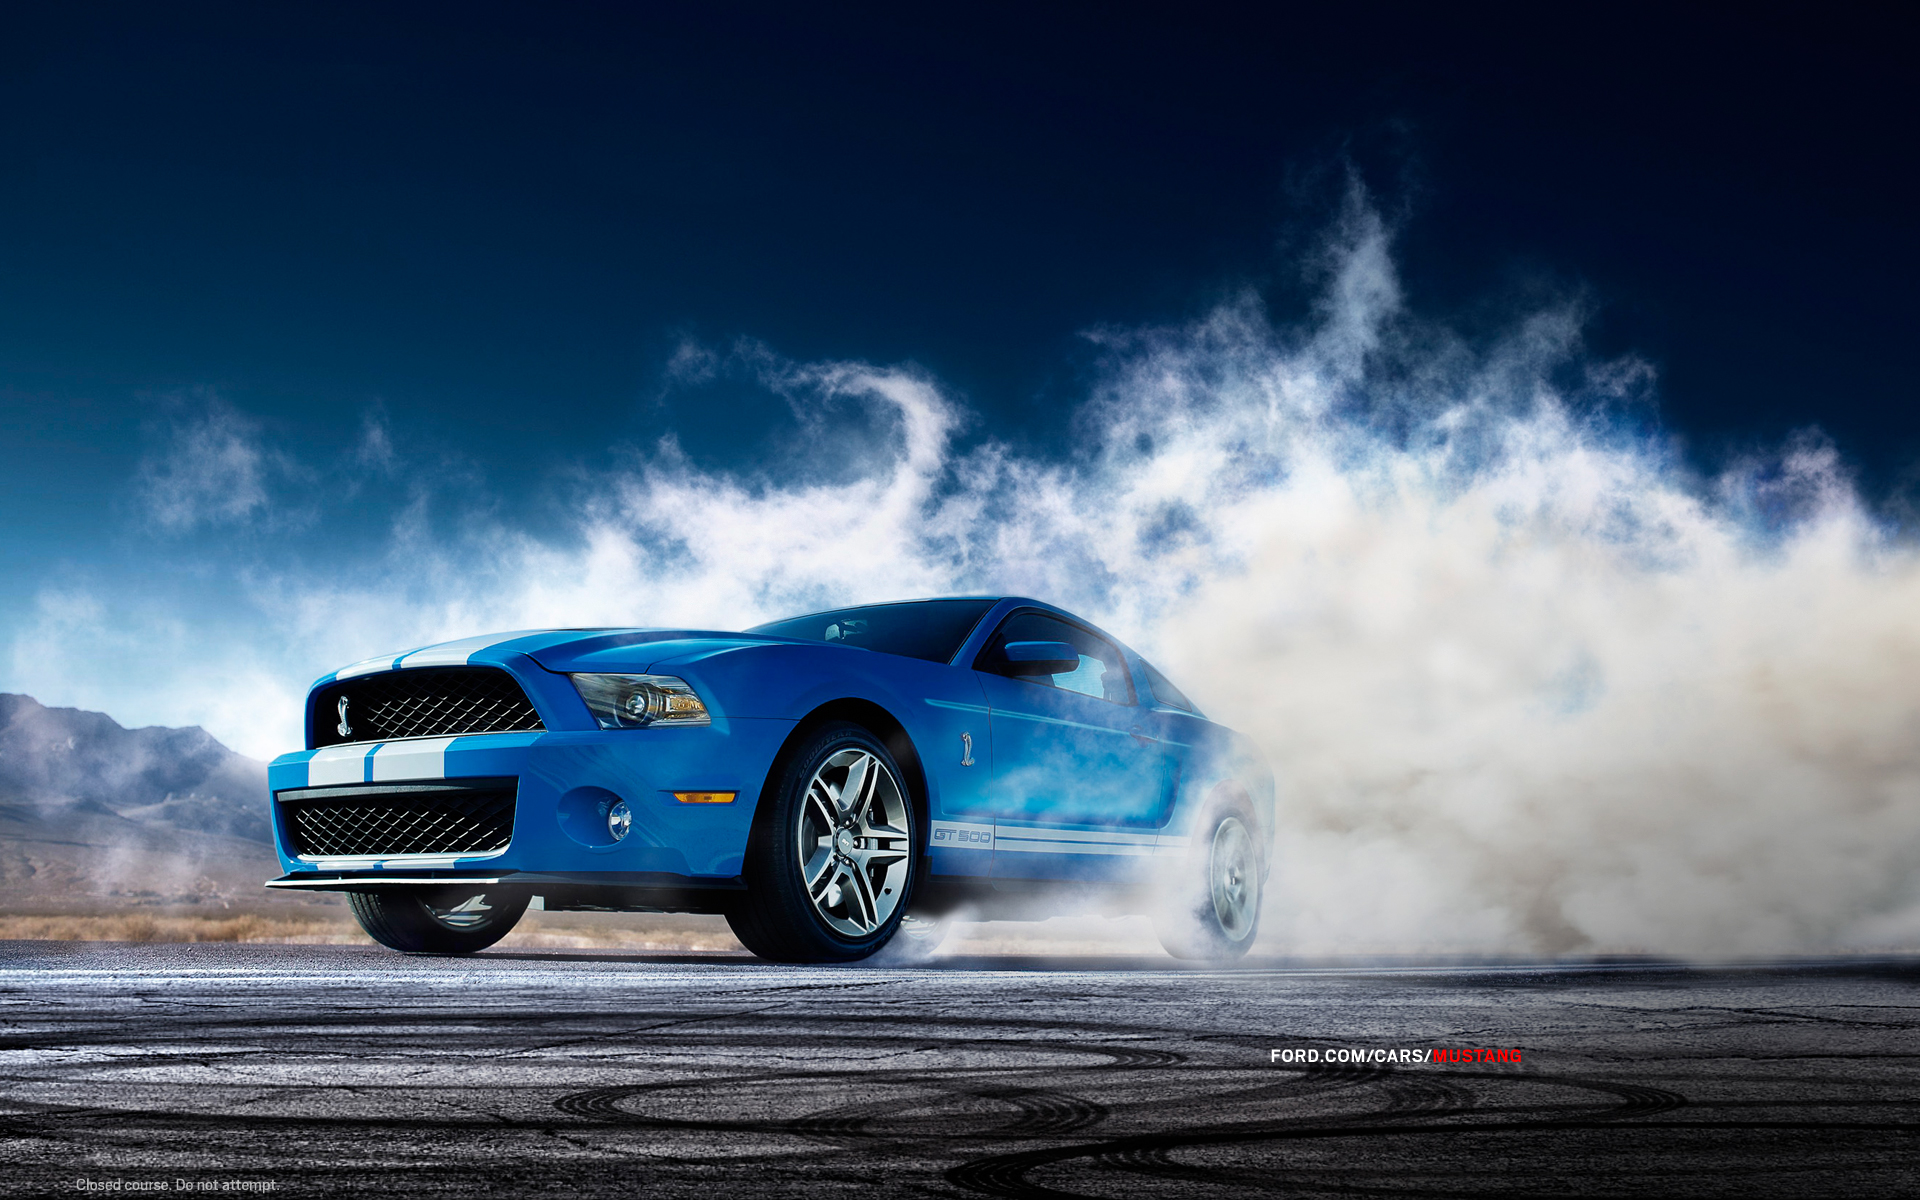 Mustang 2012 Shelby 4 Car Desktop Backgrounds HD Wallpapers 1920x1200